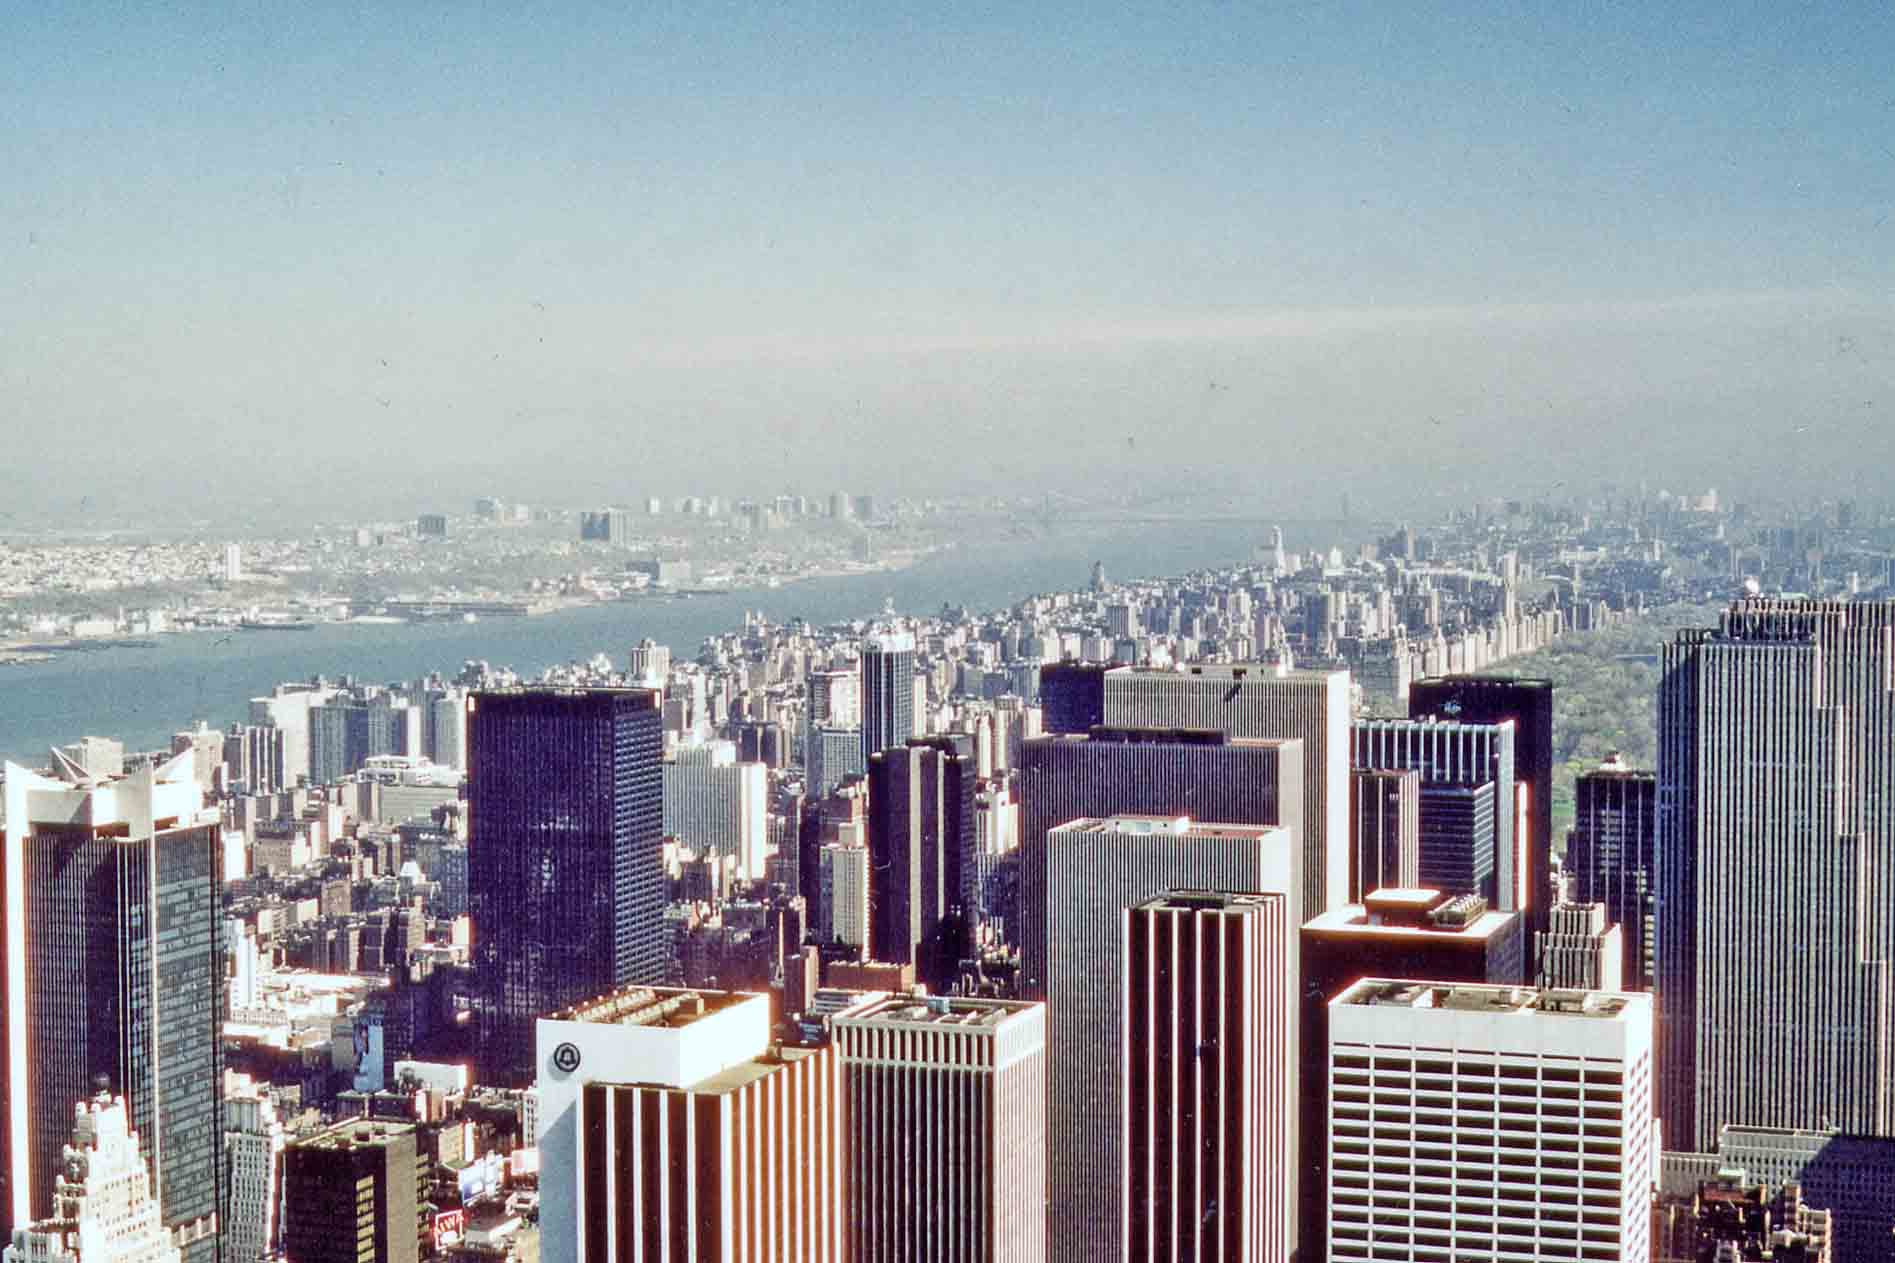 New York - view from the Empire State Building